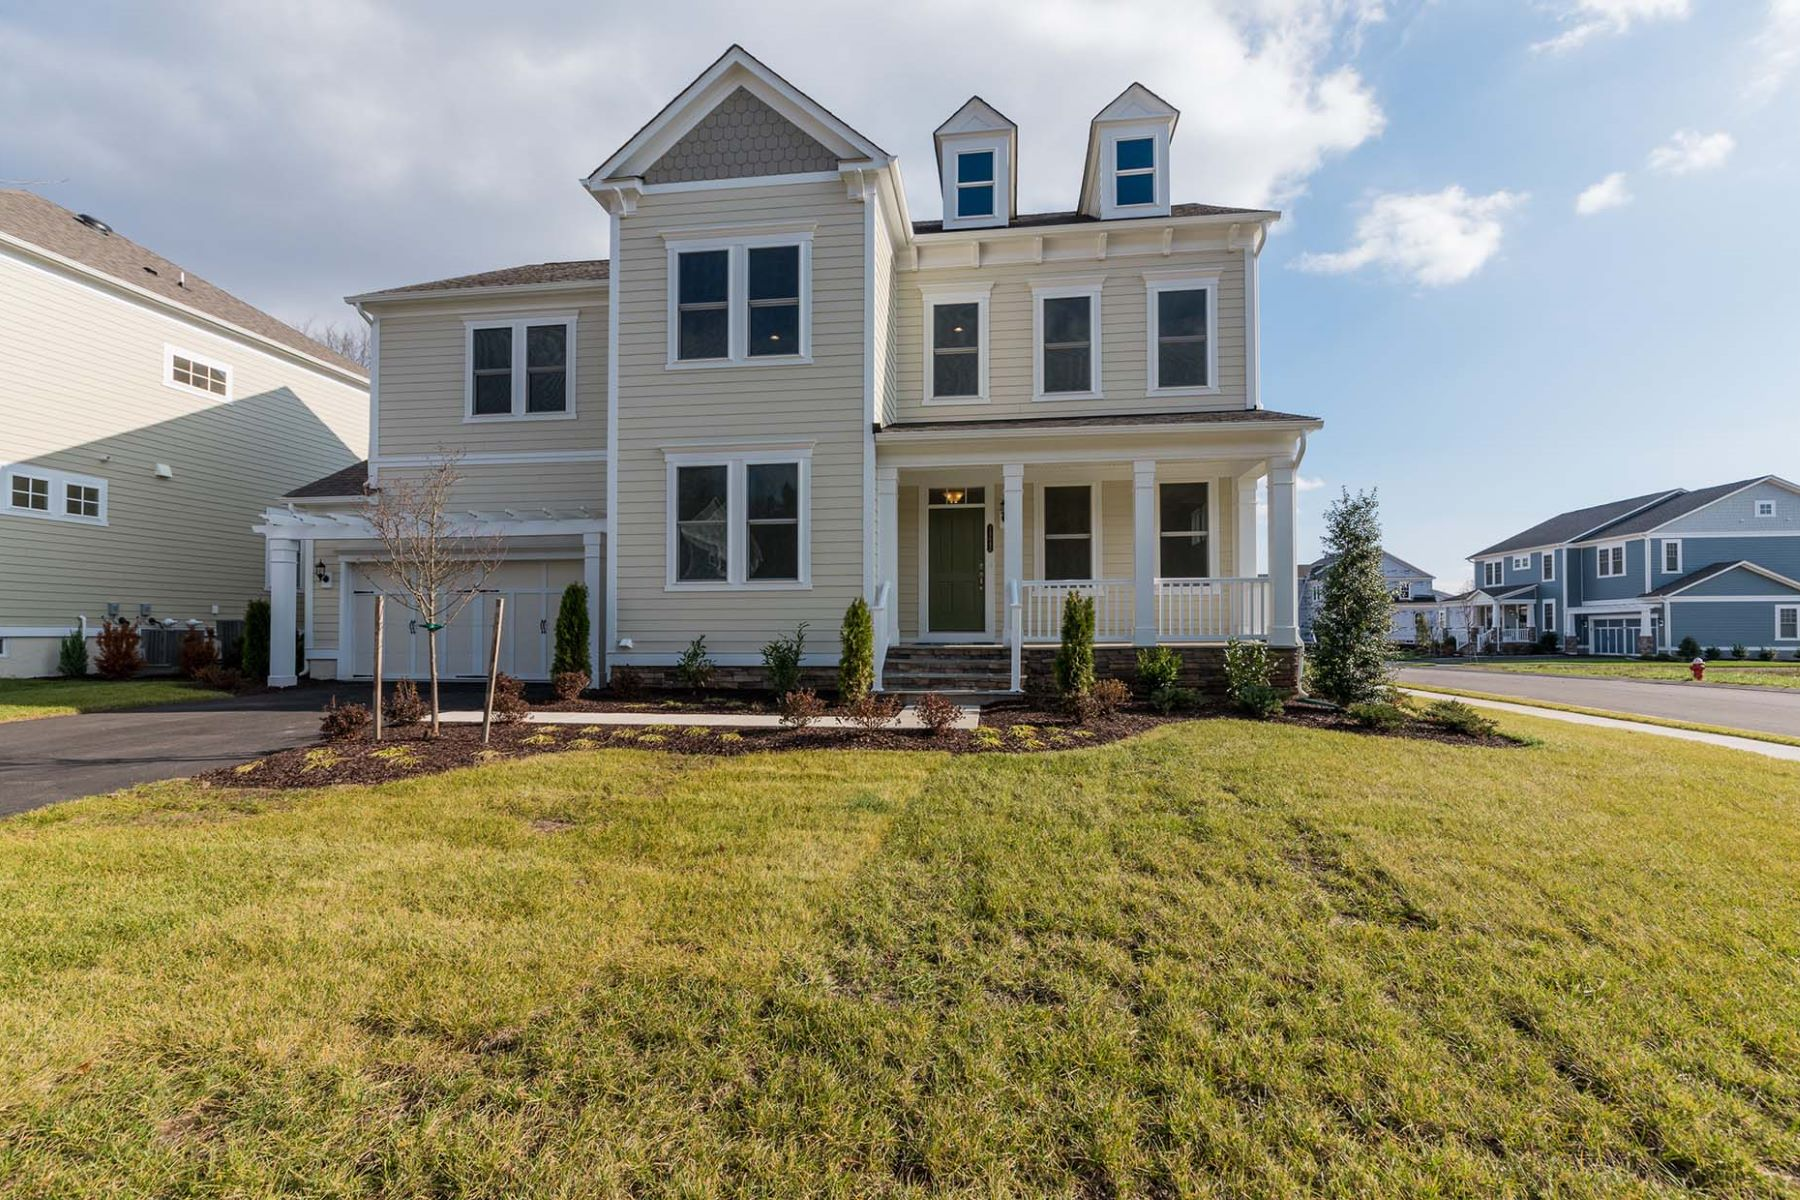 Single Family Home for Sale at Black Willow 24642 Black Willow Drive, Aldie, Virginia, 20105 United States